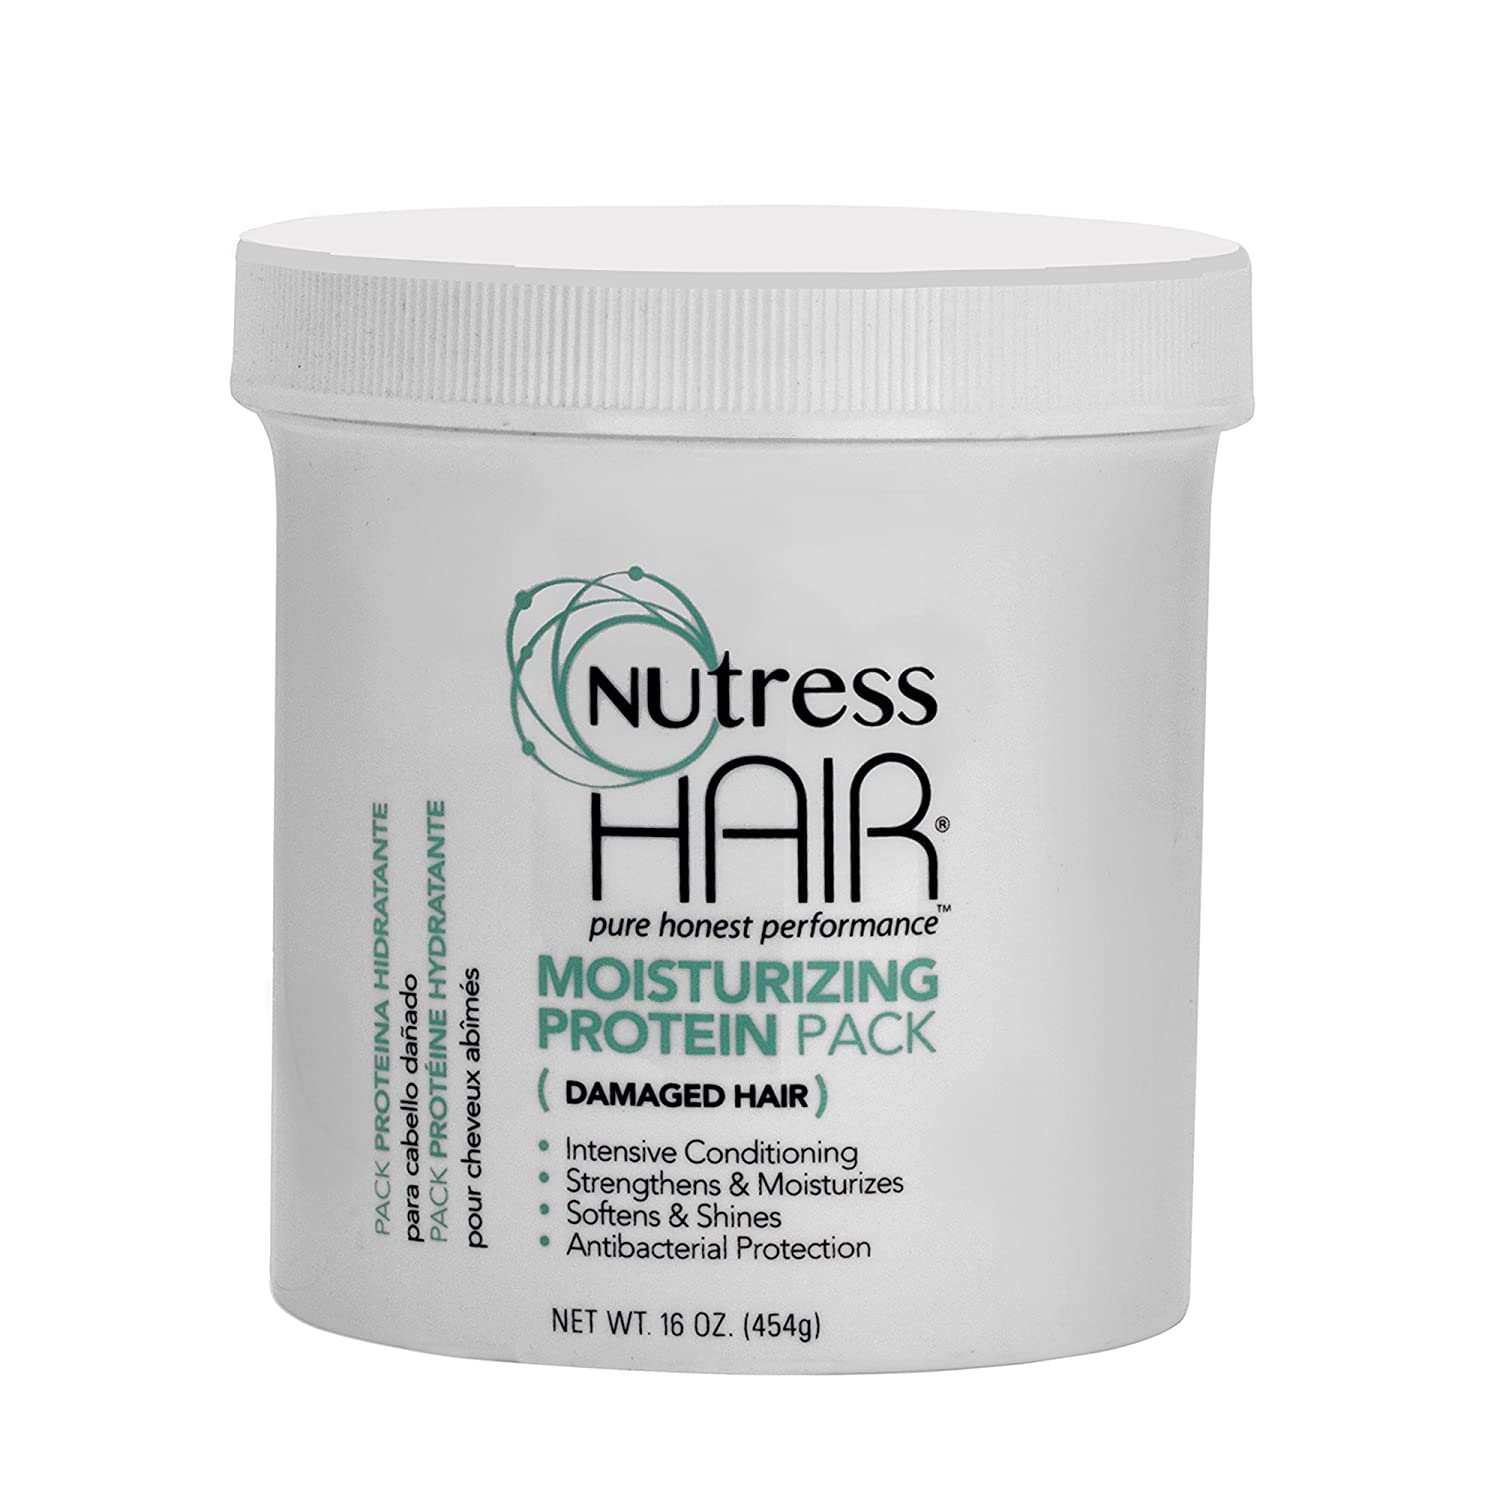 Nutress Hair One-Step Protein Treatment for Damaged Hair 16 oz.